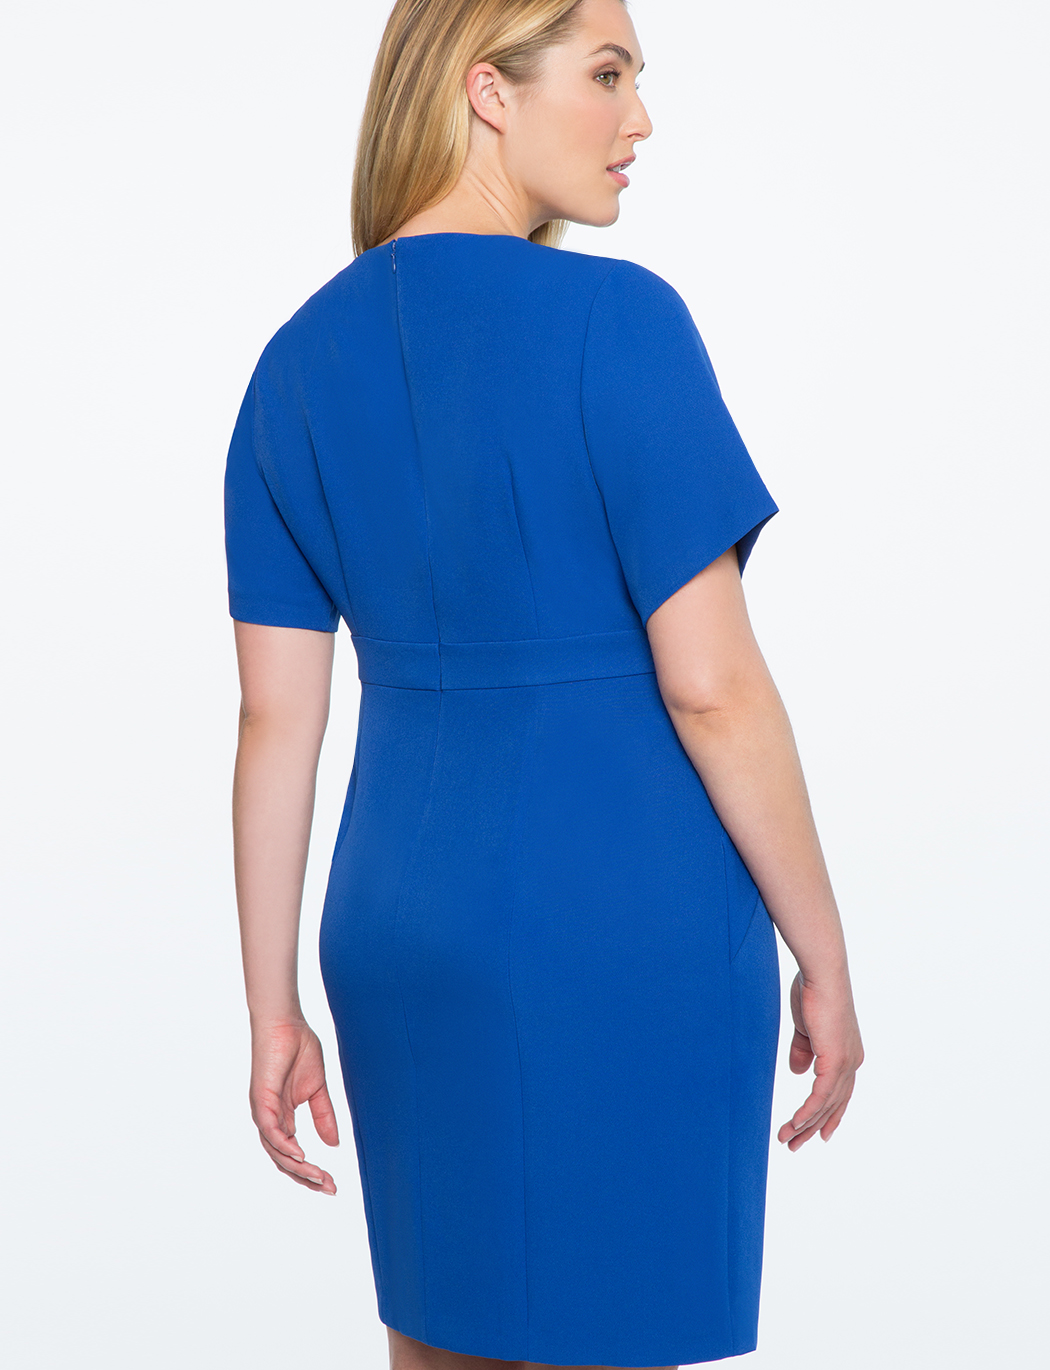 V Neck Sheath Dress